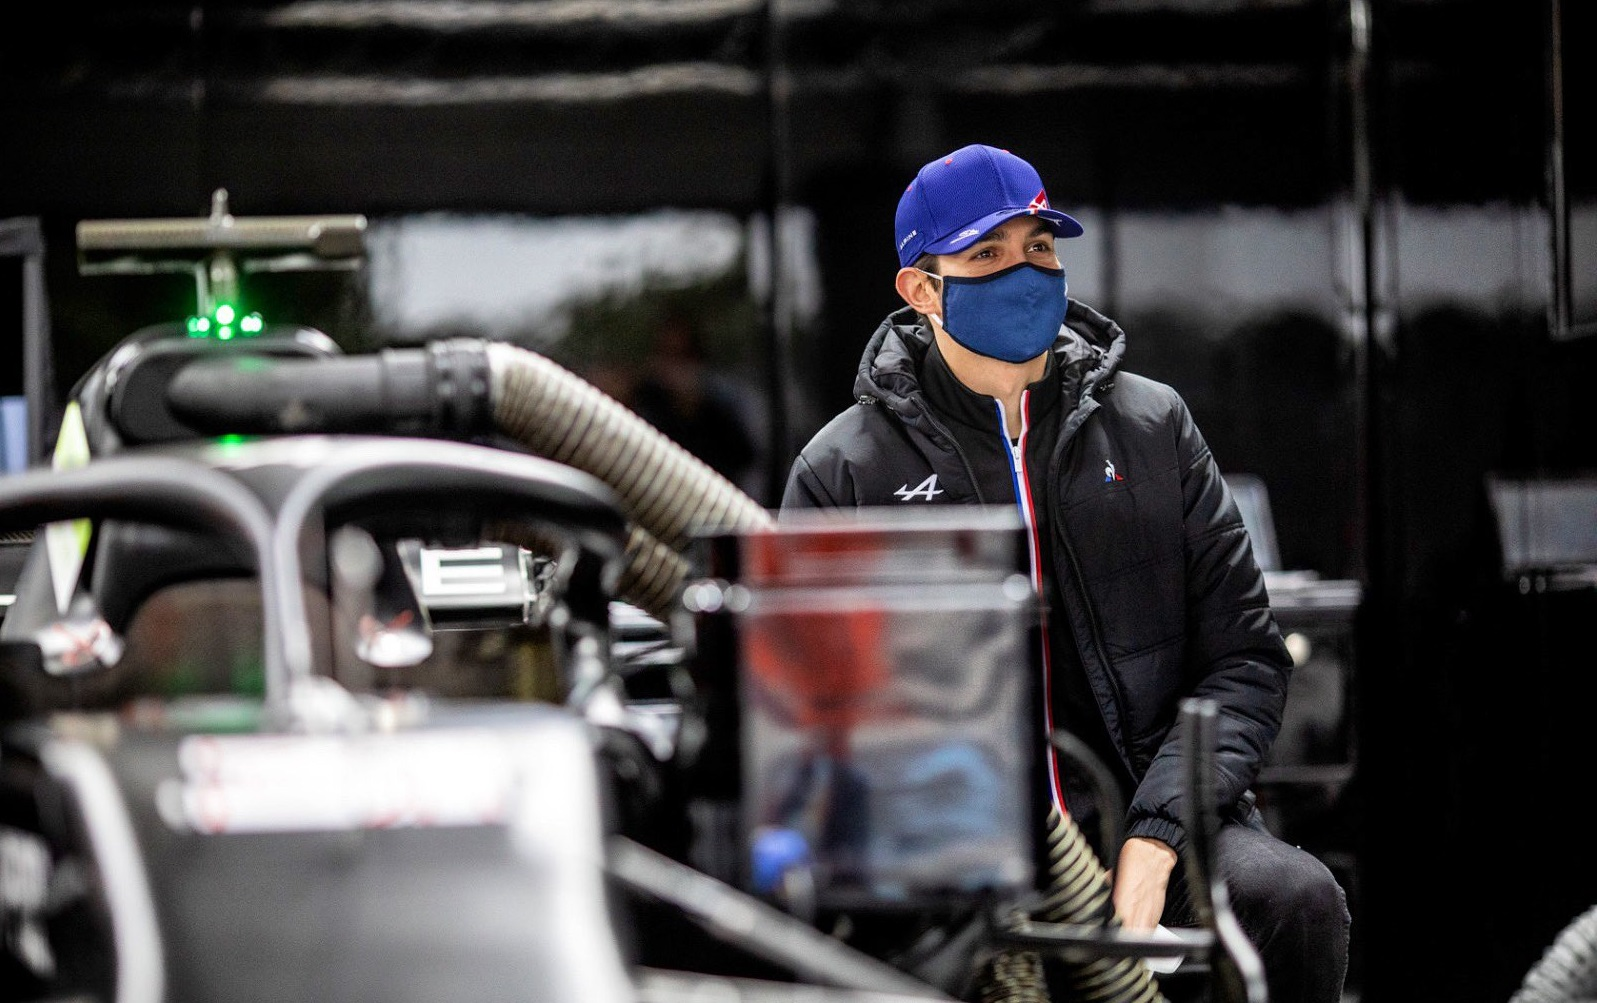 Esteban Ocon Needs To Beat Fernando Alonso To Keep His Seat In Formula One